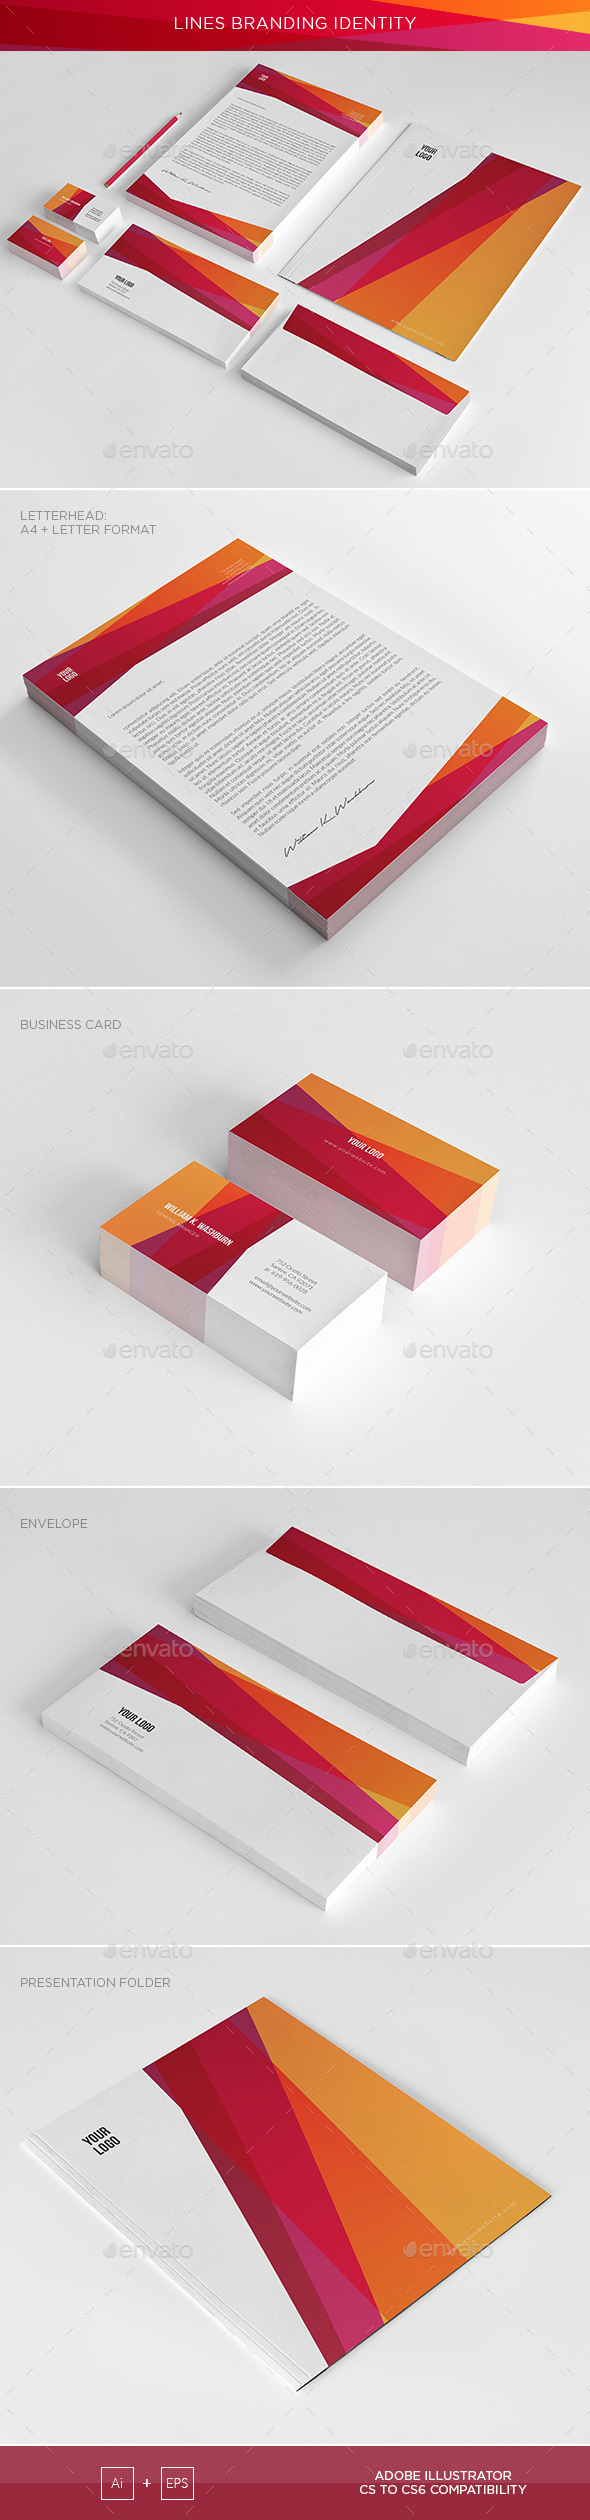 Abstract Lines Corporate Identity - Corporate Business Cards